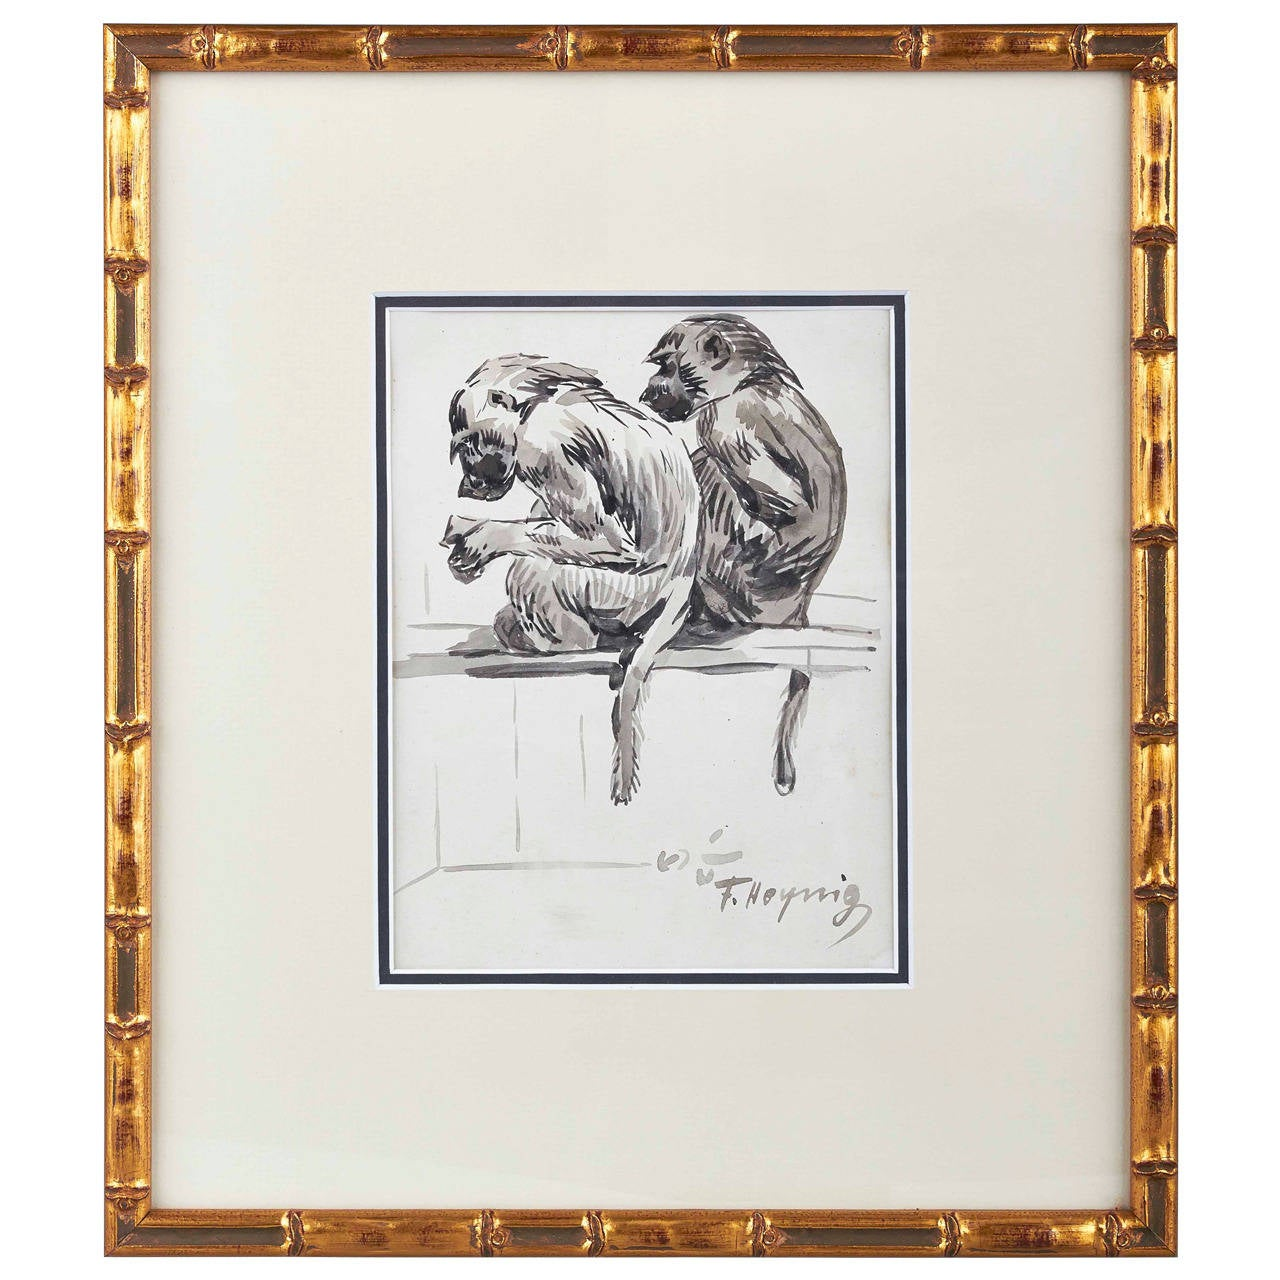 drawing of two monkeys by felix heynig for sale at 1stdibs